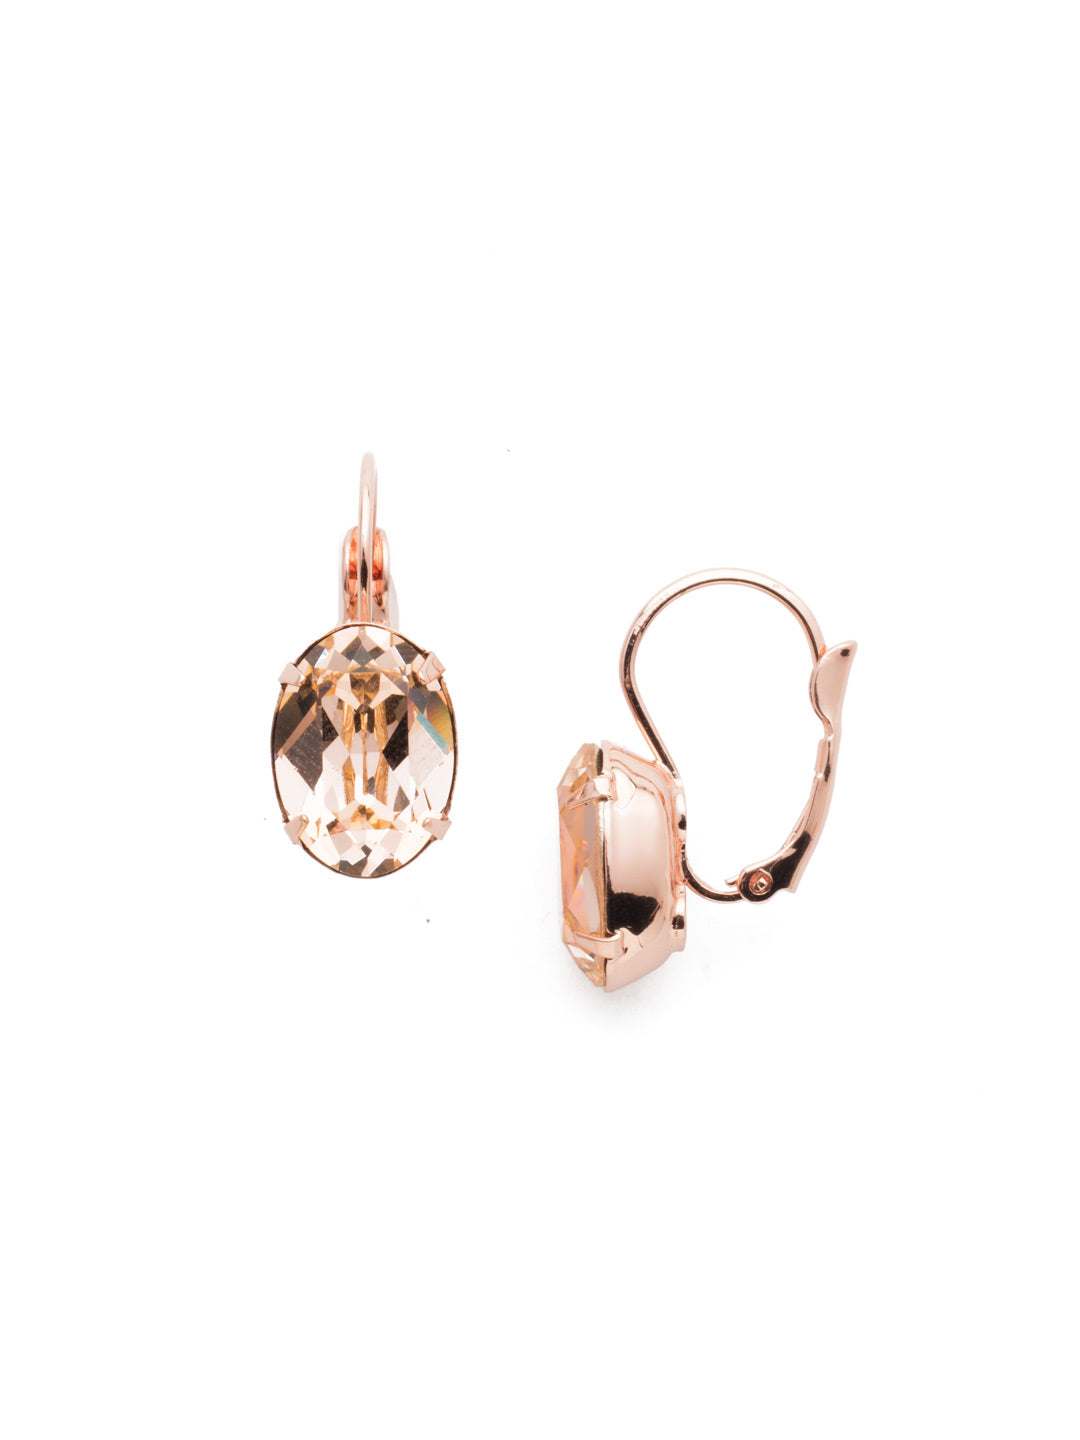 Oval Cut French Wire Earrings - ECR20RGLVP